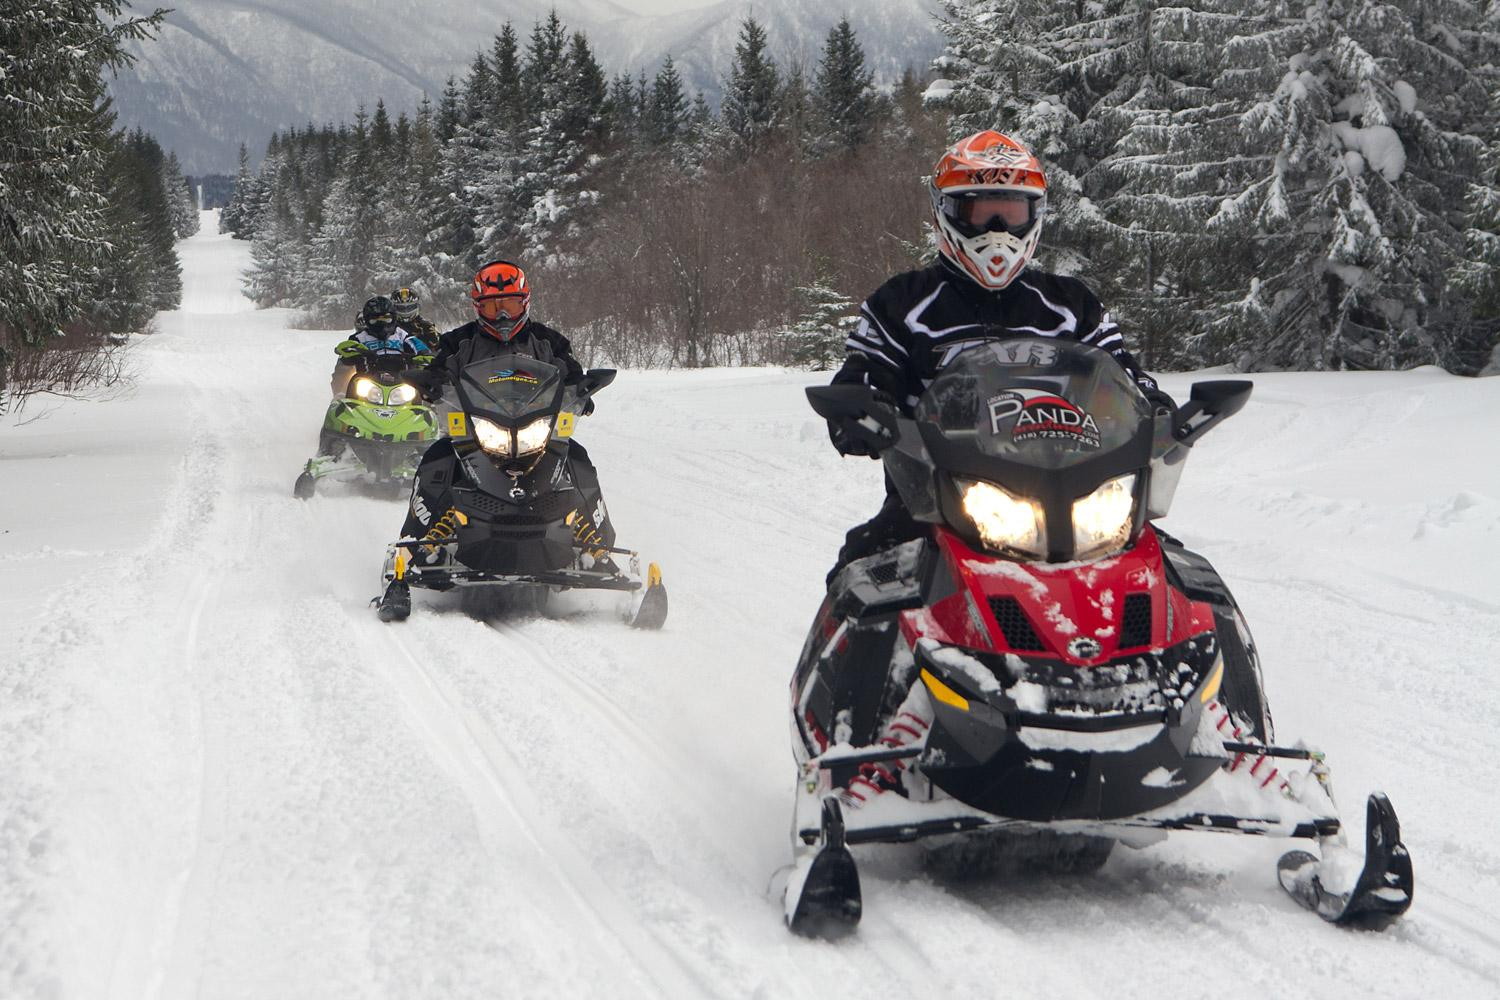 LOW COST OF SNOWMOBILING